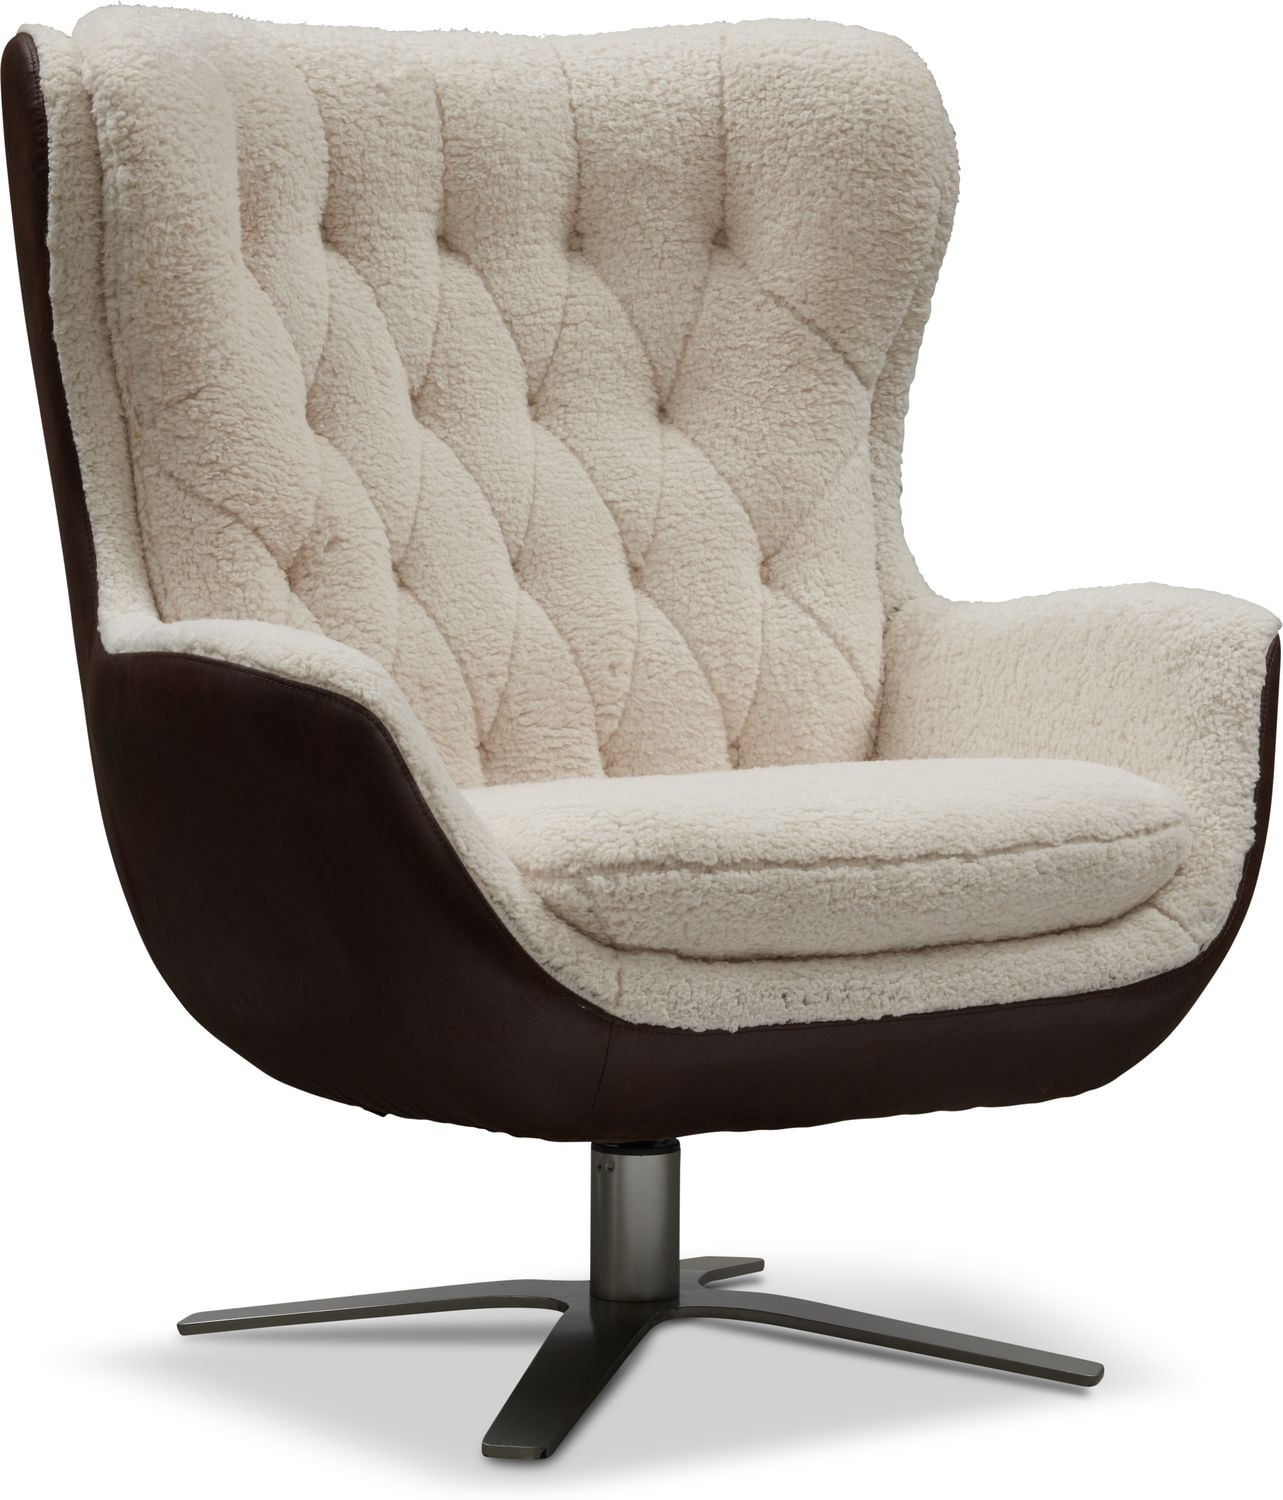 Phenomenal Simone Sherpa Swivel Chair Gmtry Best Dining Table And Chair Ideas Images Gmtryco